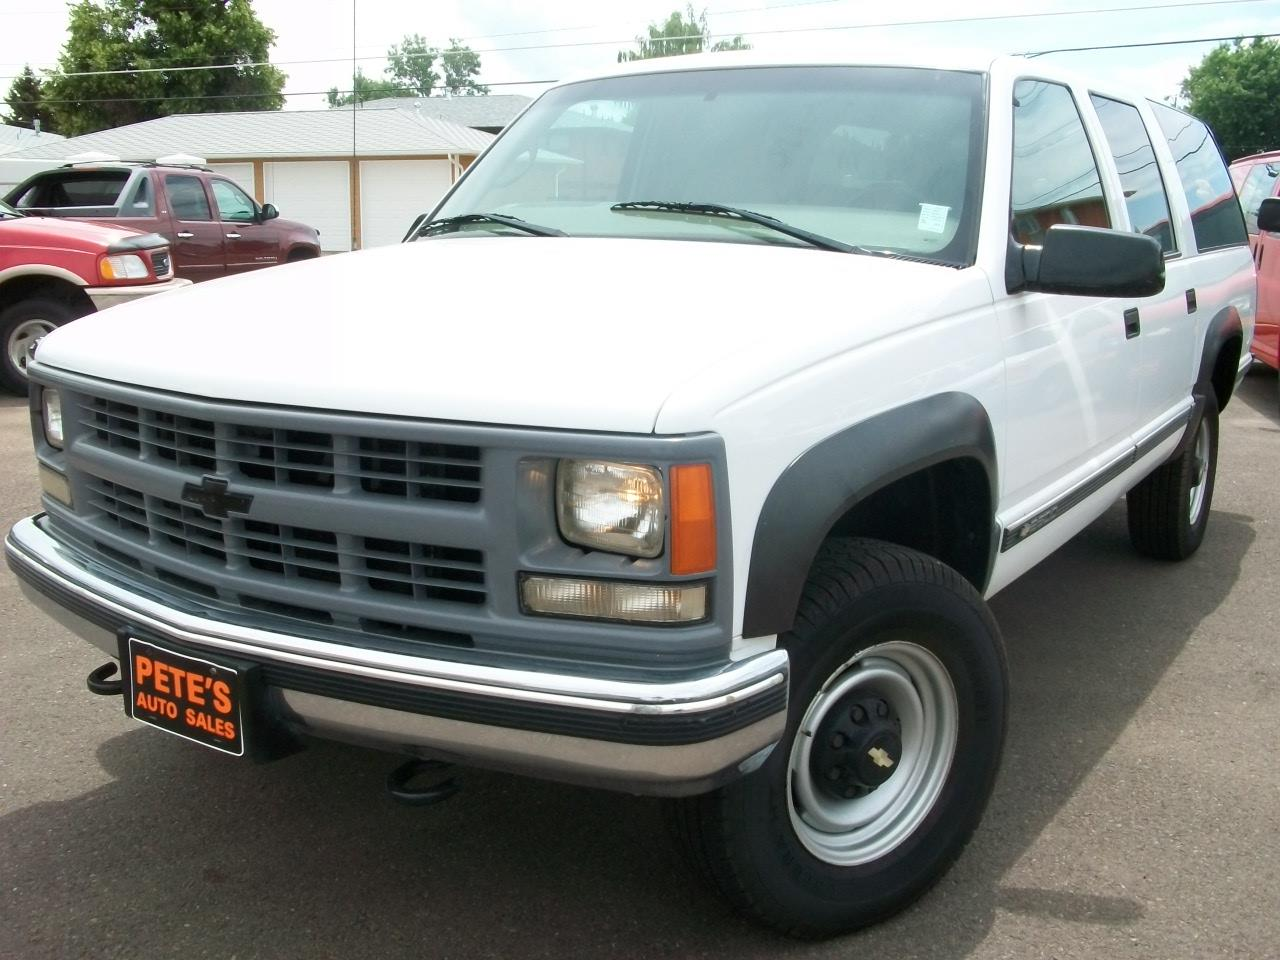 Petes Auto Sales >> 1999 Chevrolet Suburban for sale in Montana - Carsforsale.com